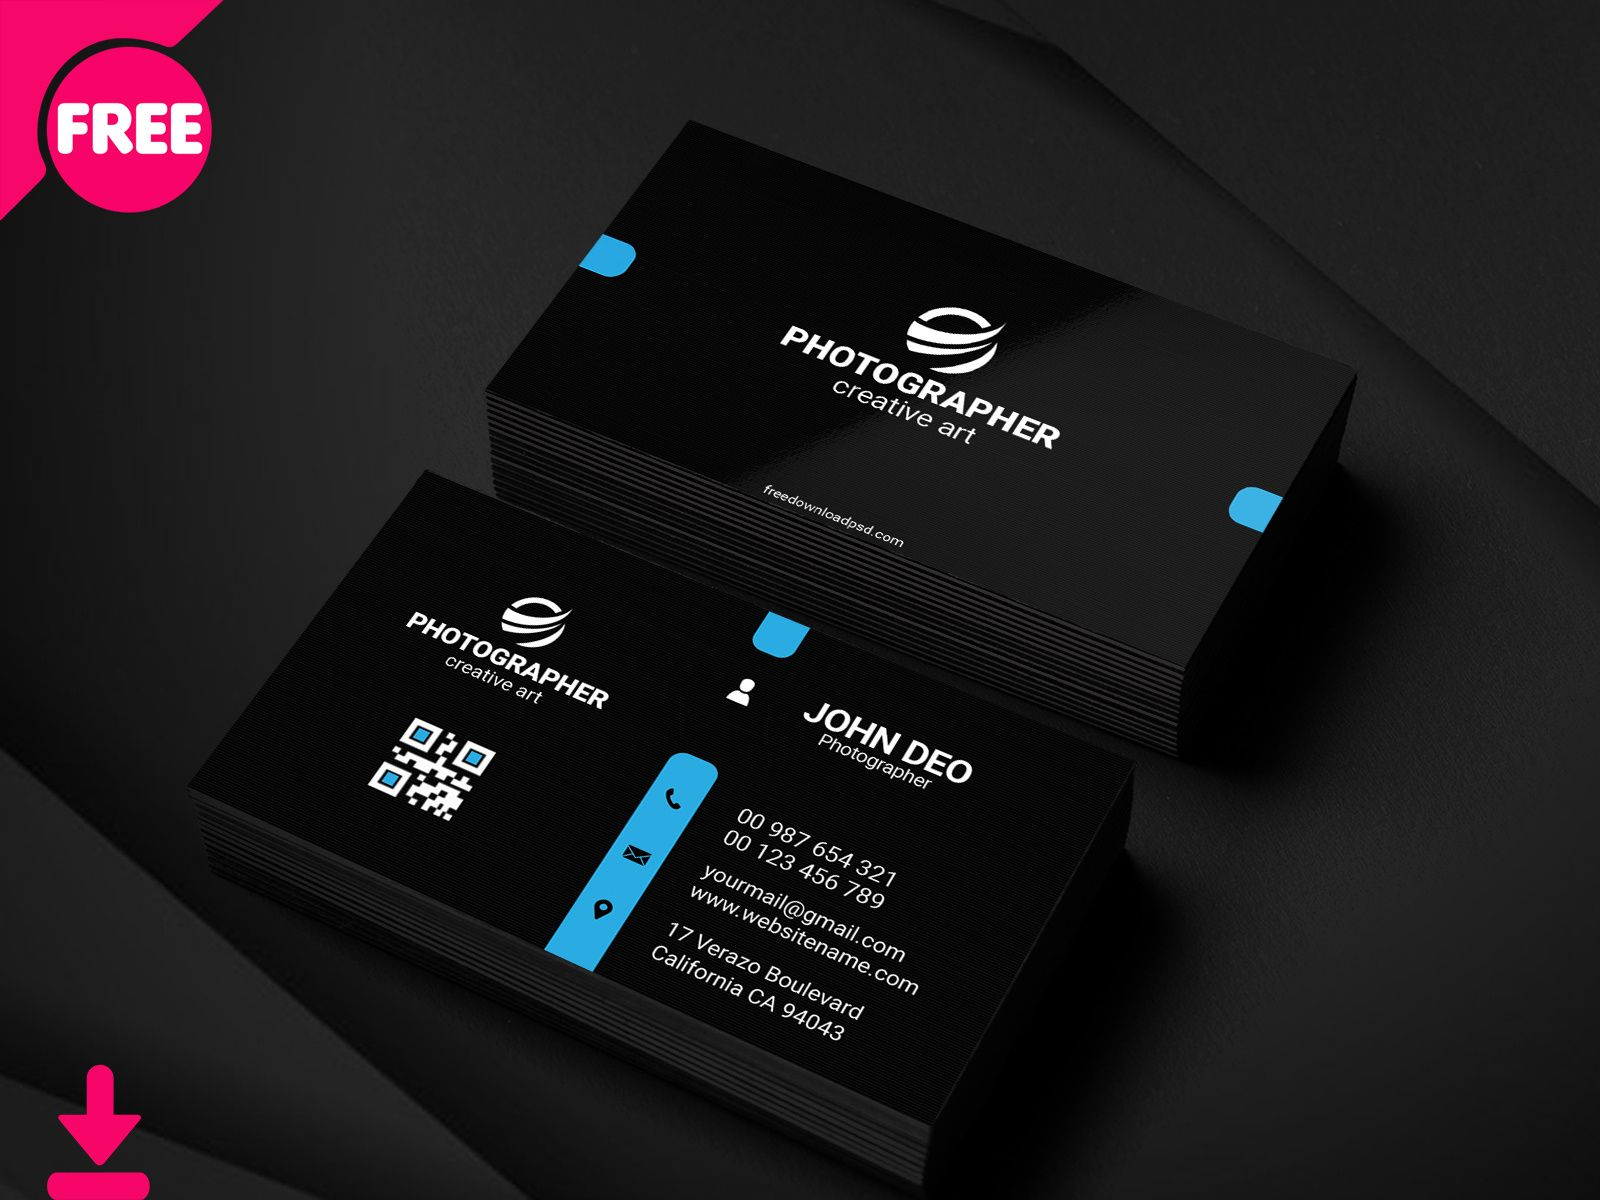 Dribbble Free Personal Business Card Psd Template Cover Regarding Free Personal Business Card Templa Business Card Psd Personal Business Cards Personal Cards